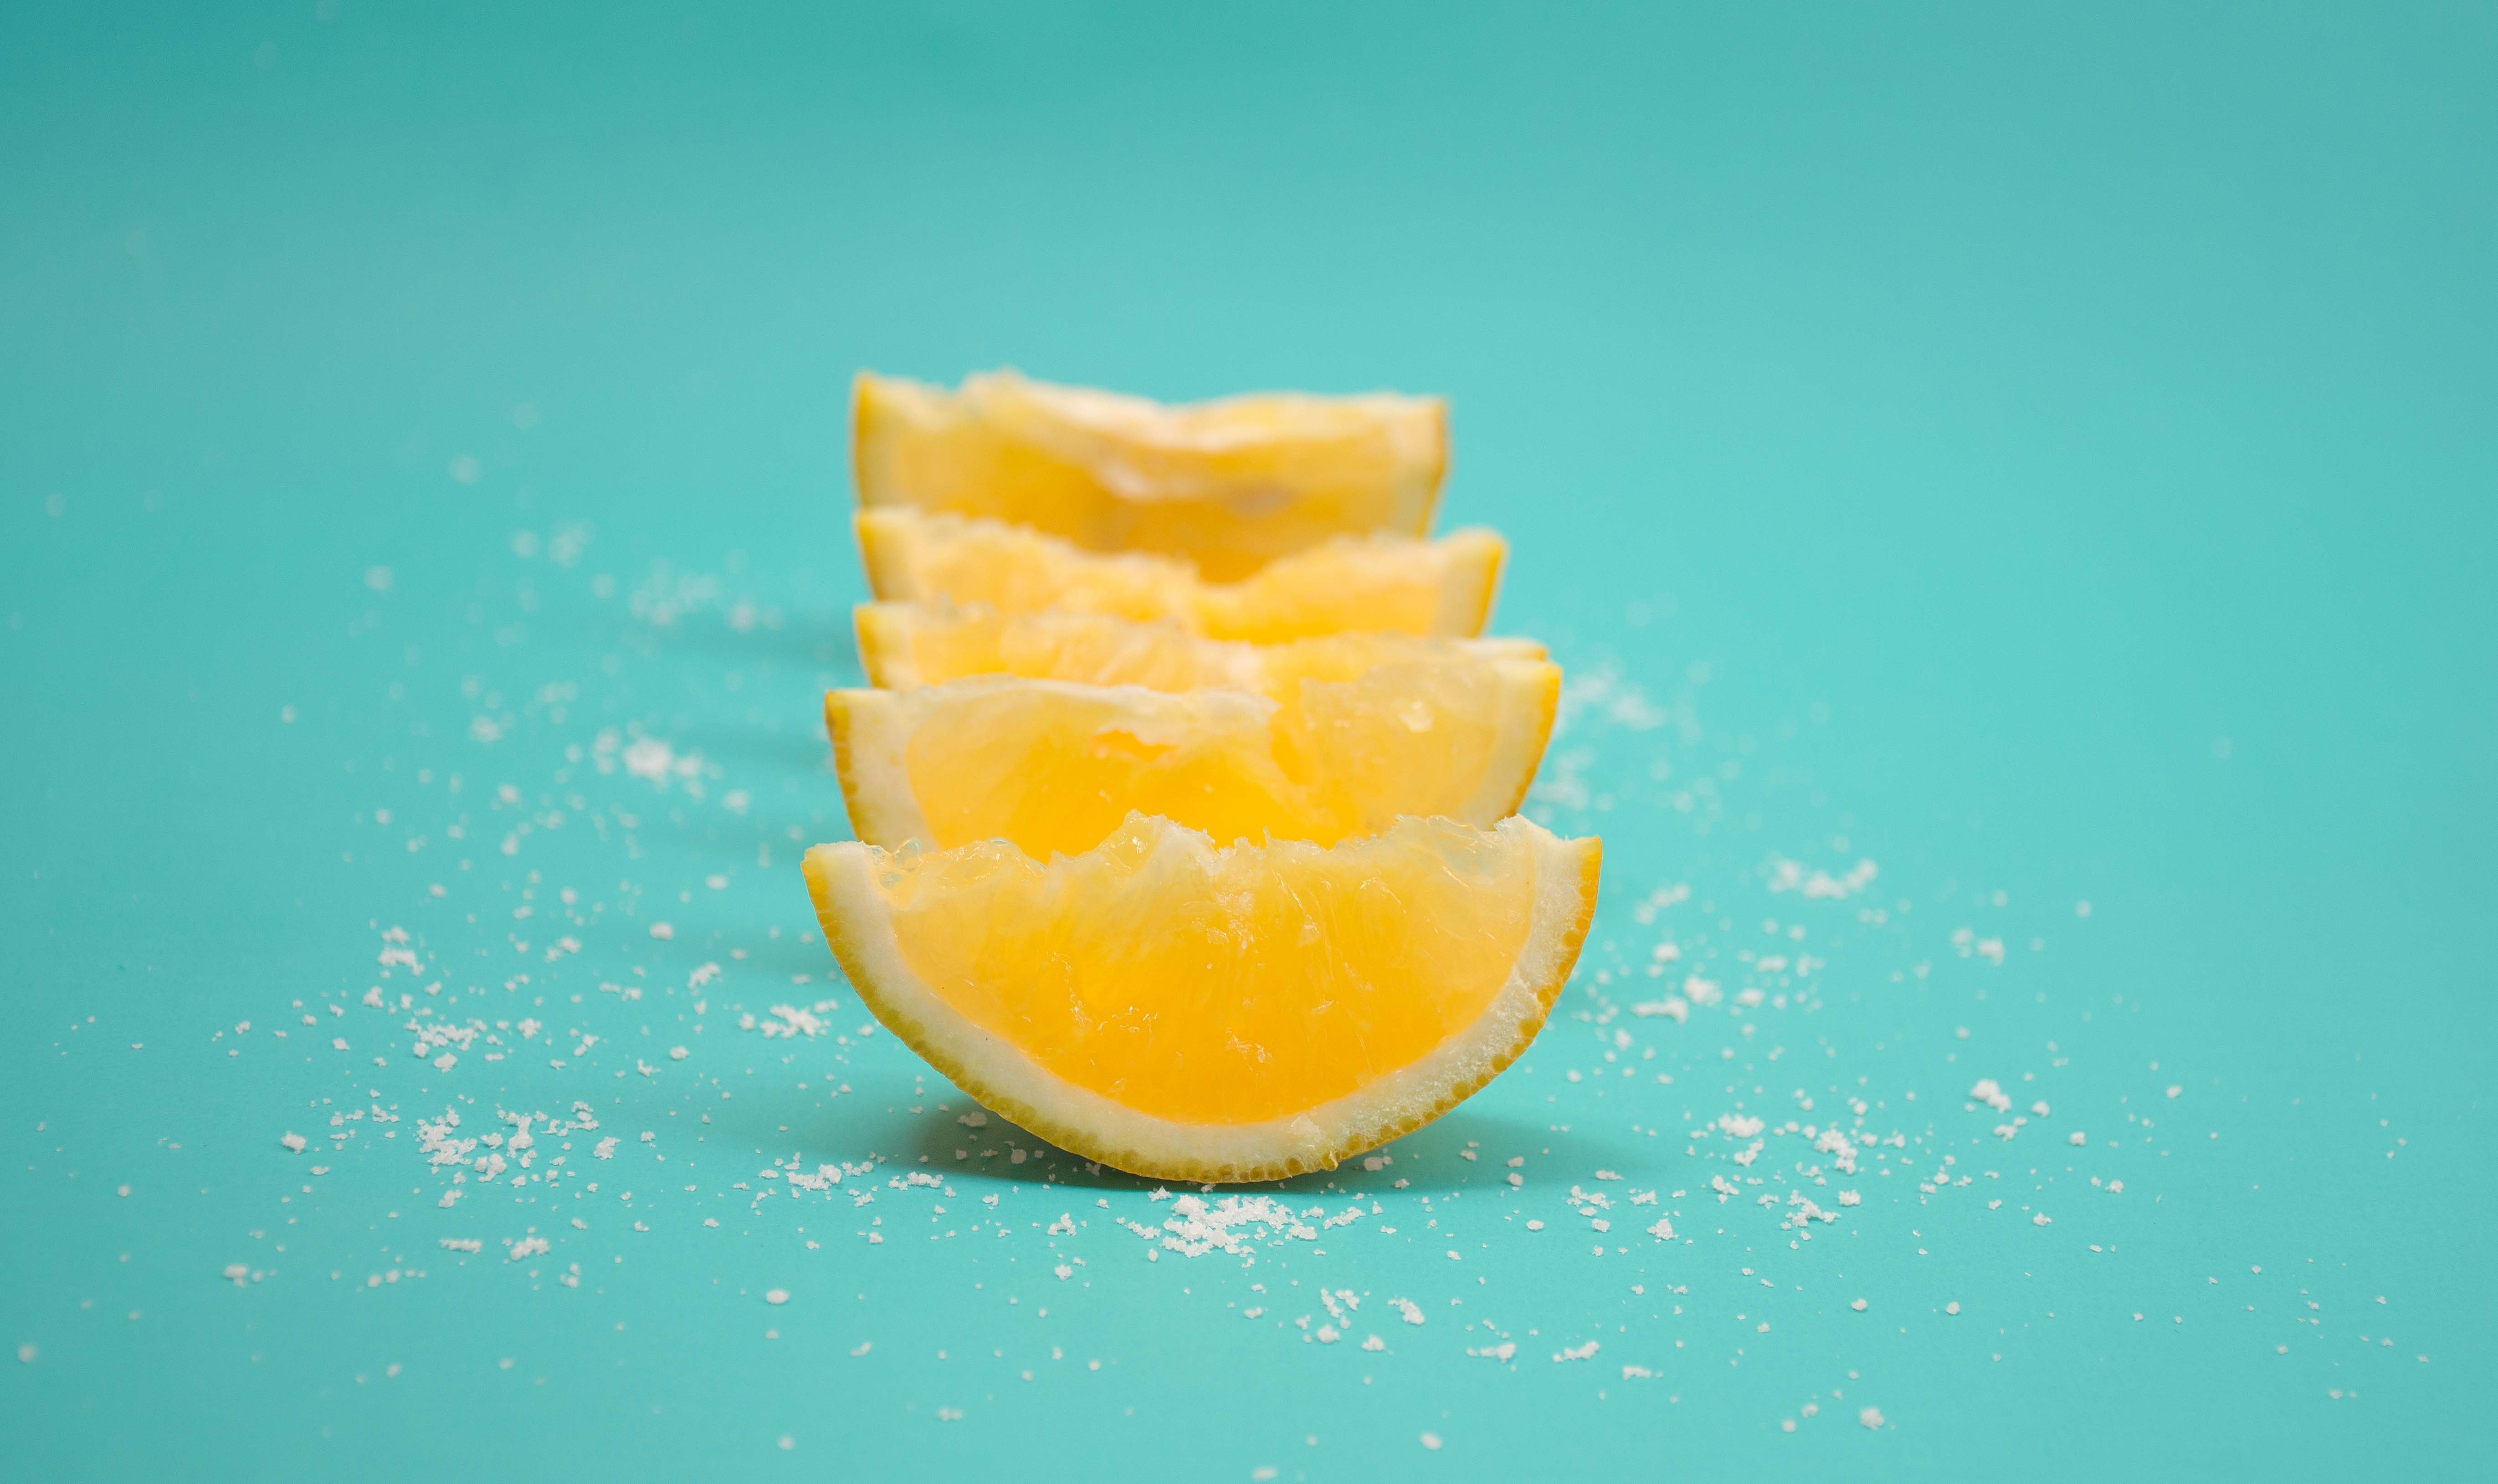 slice of yellow citrus fruits